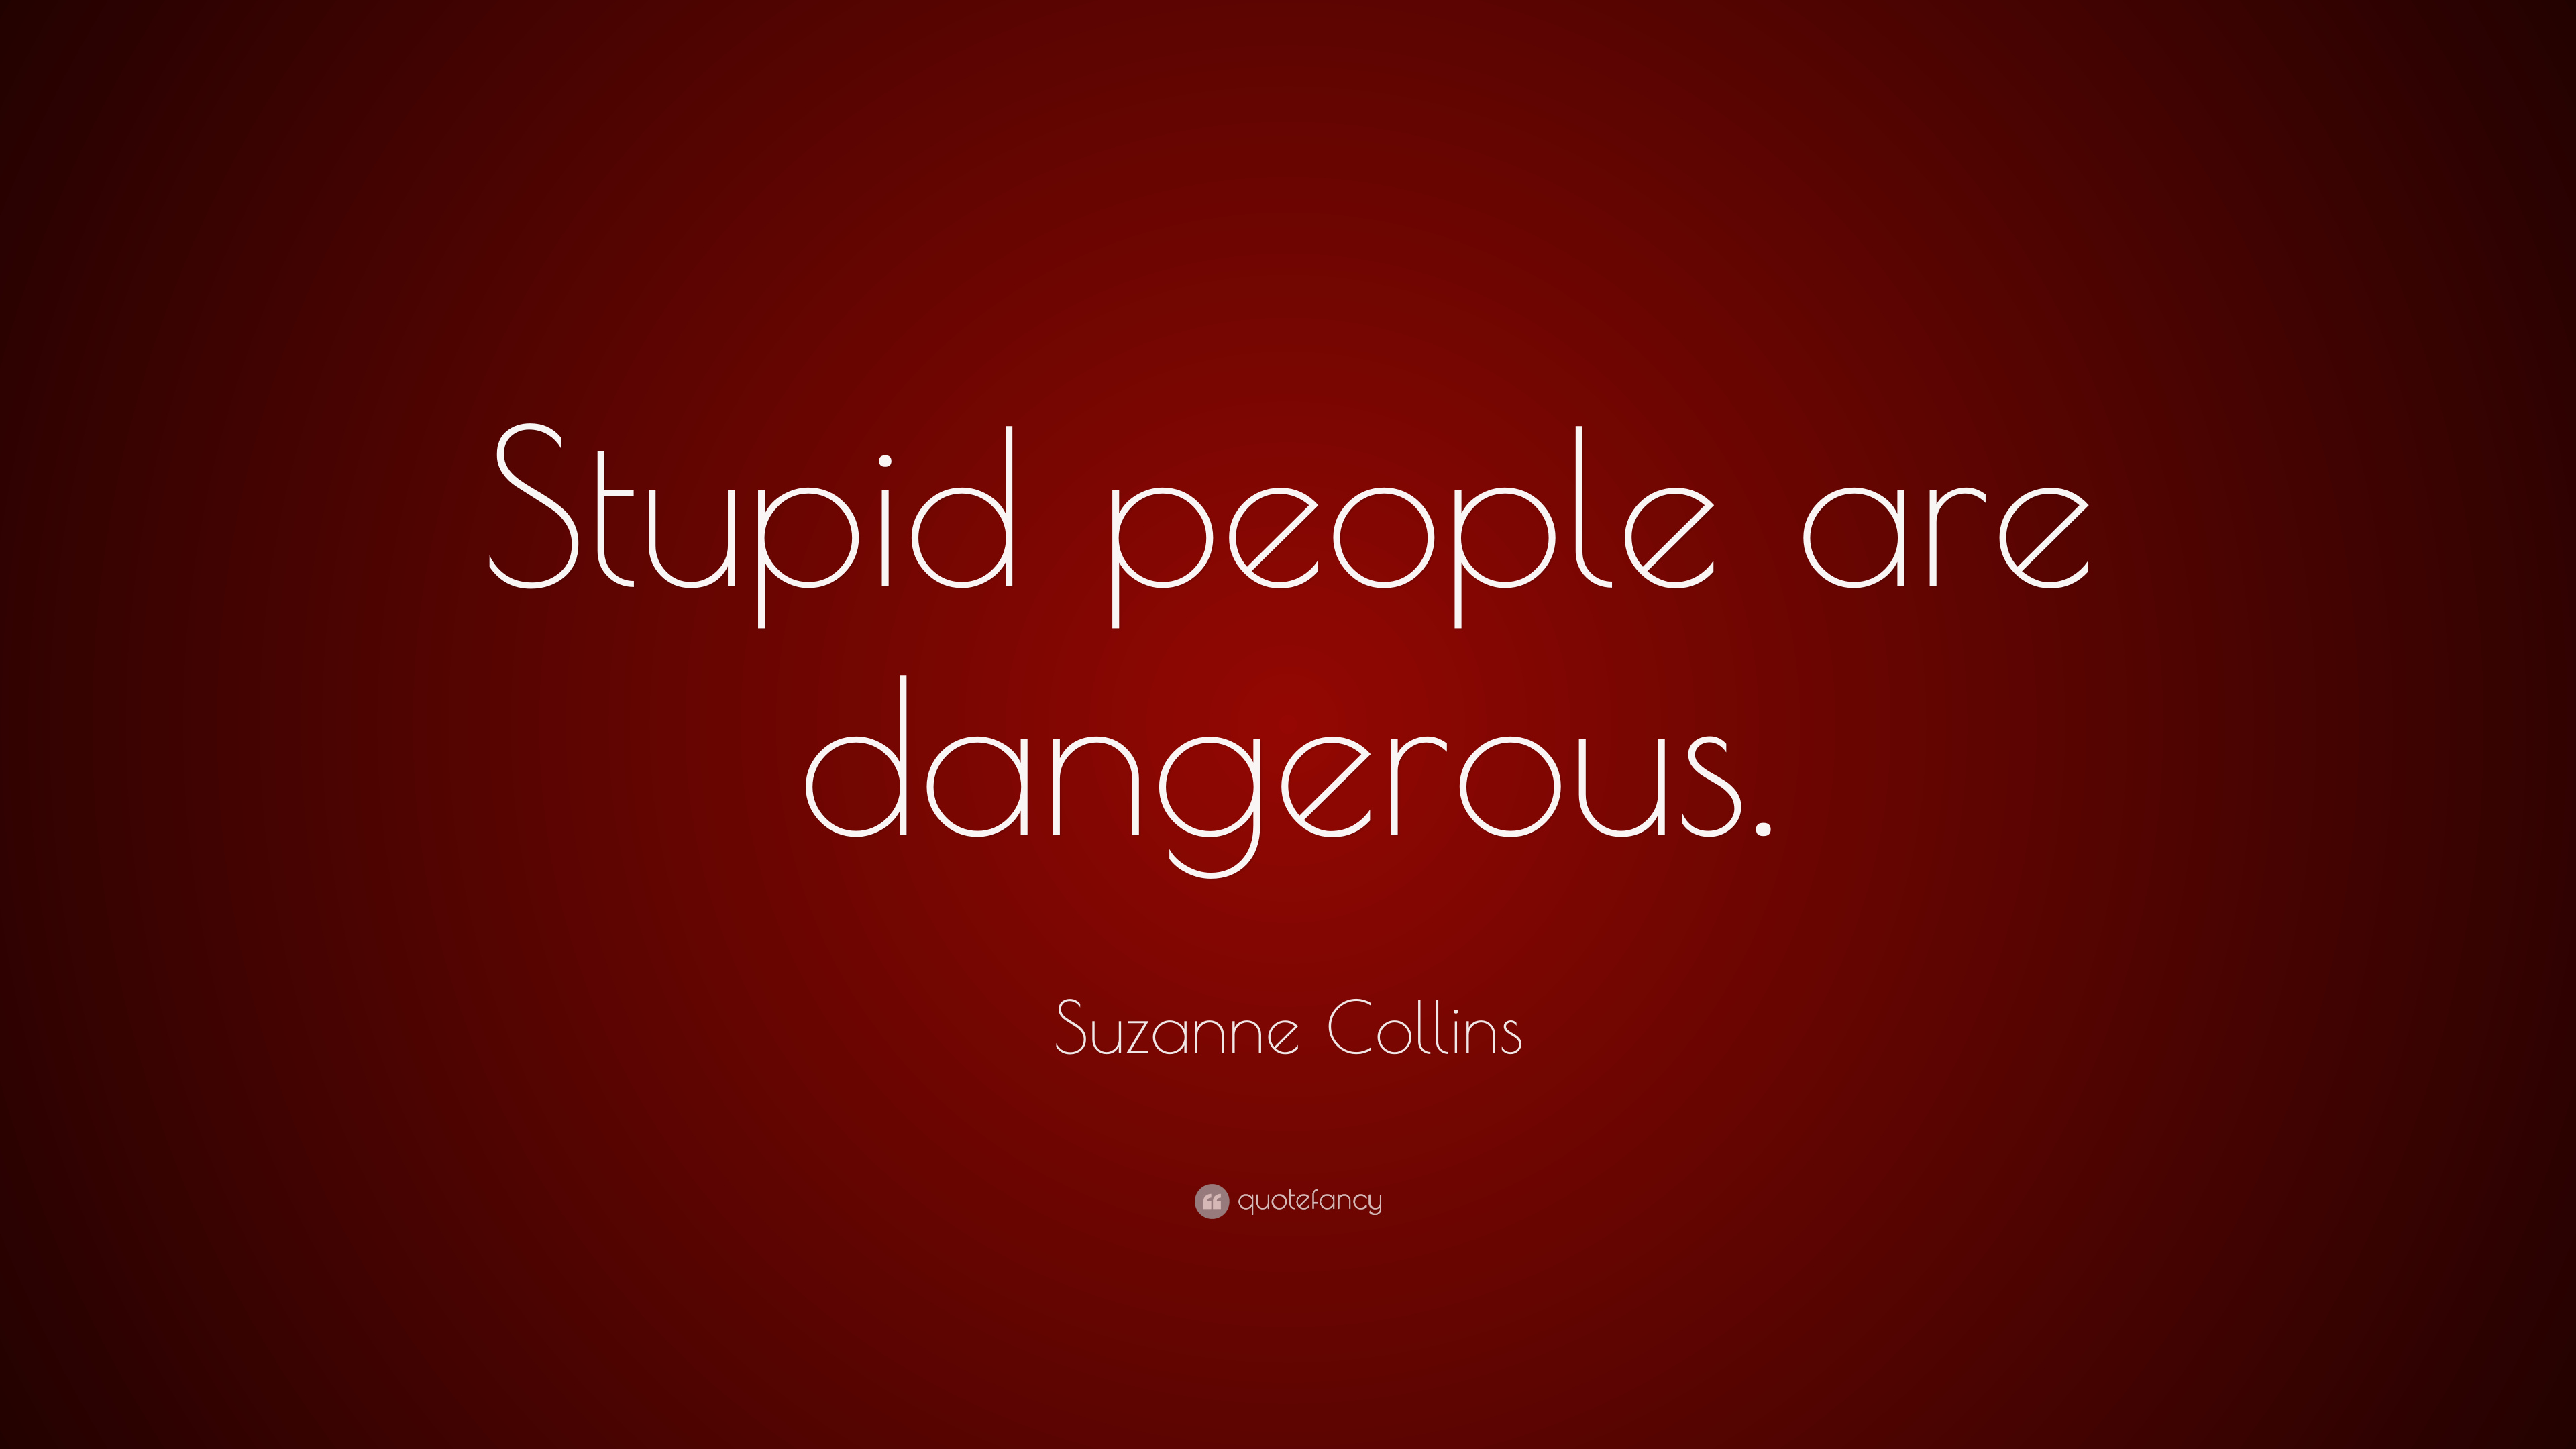 """Suzanne Collins Quote: """"Stupid people are dangerous."""" (6 ..."""